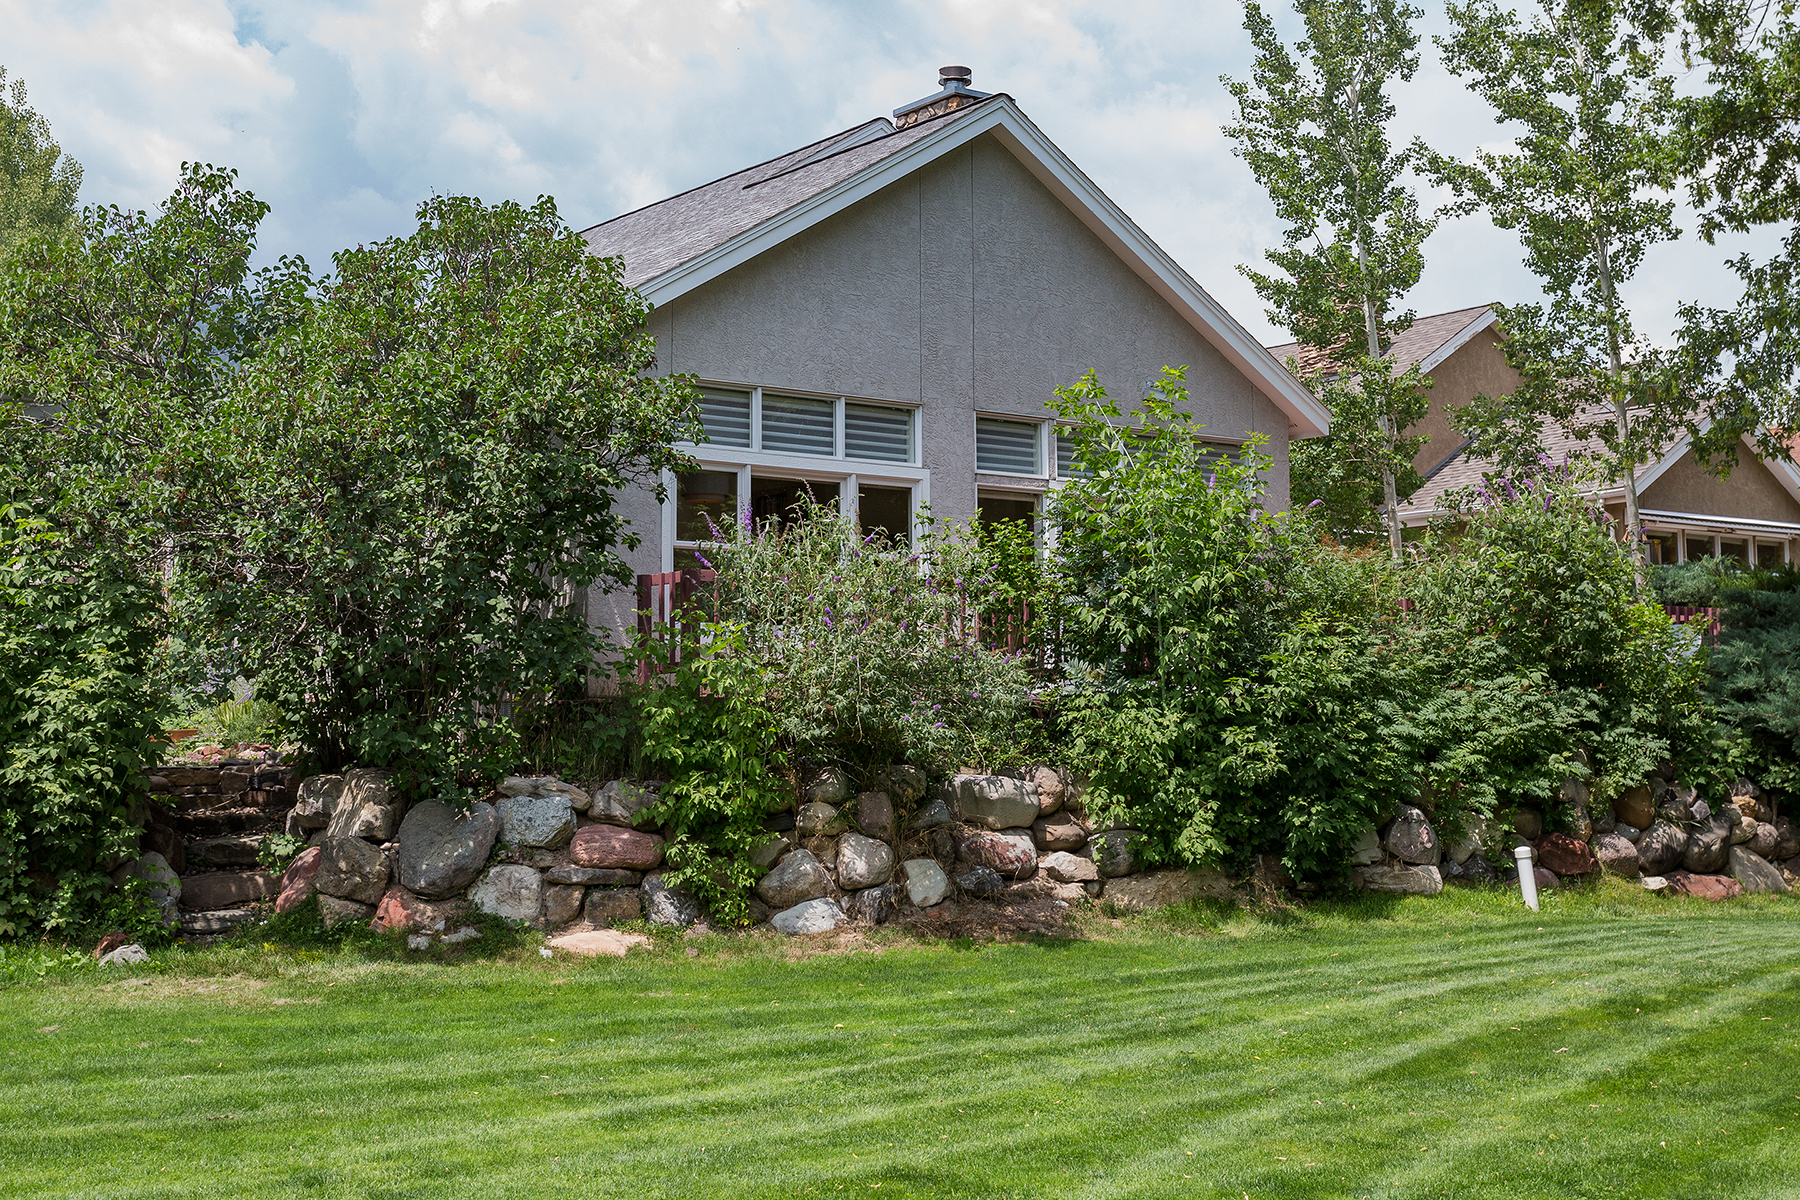 Additional photo for property listing at 67 Crazy Horse Drive 67 Crazy Horse Drive Durango, Colorado 81301 United States